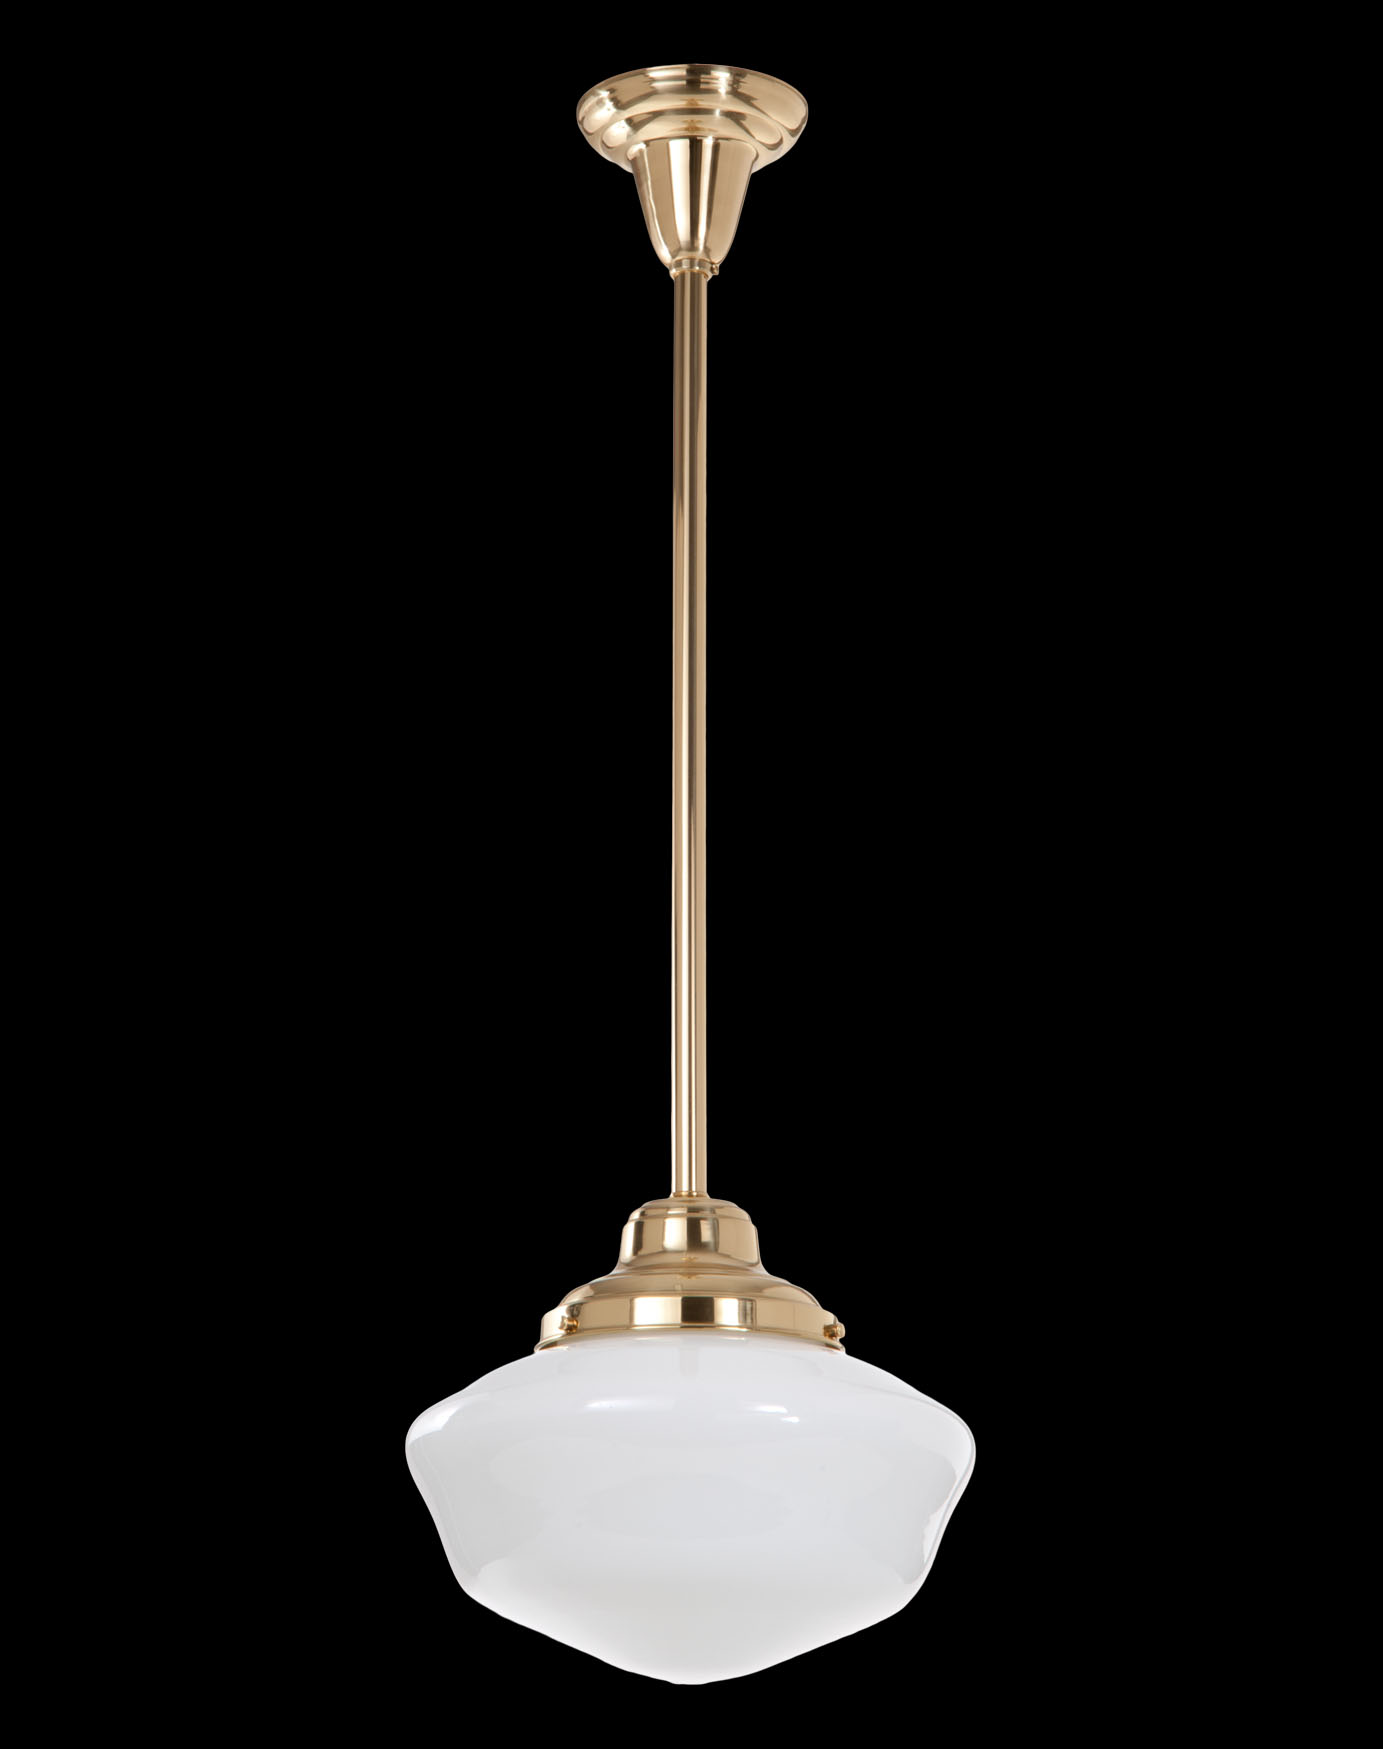 Schoolhouse pendant fixture 4 inch holder 69415 bp lamp supply schoolhouse style pendant fixture w4 inch fitter size shade holder and polished and lacquered brass frame 26 drop pendant fixture comes fully wired and arubaitofo Gallery